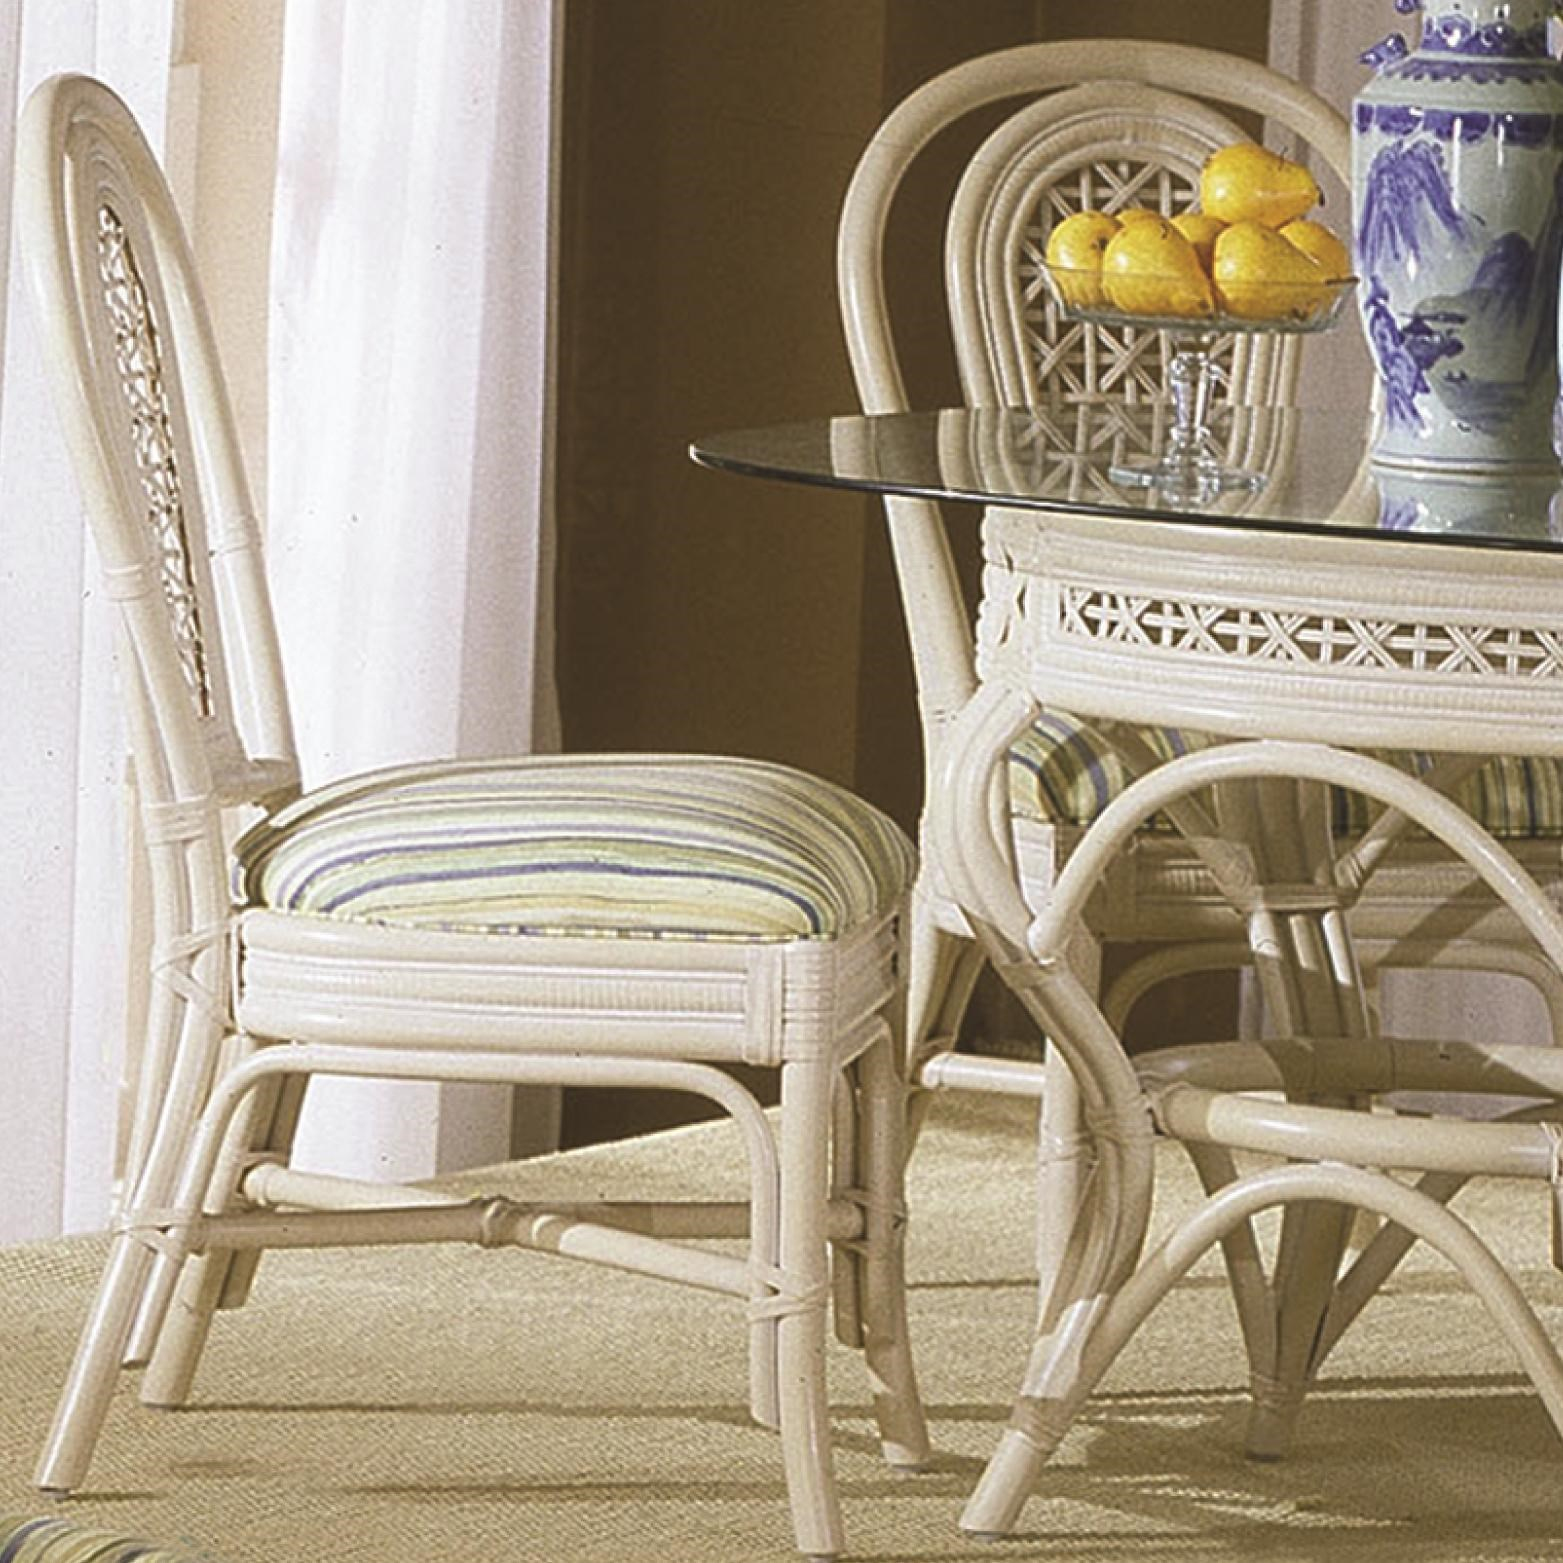 Rattan furniture tampa patio furniture tucson target for Affordable furniture tampa